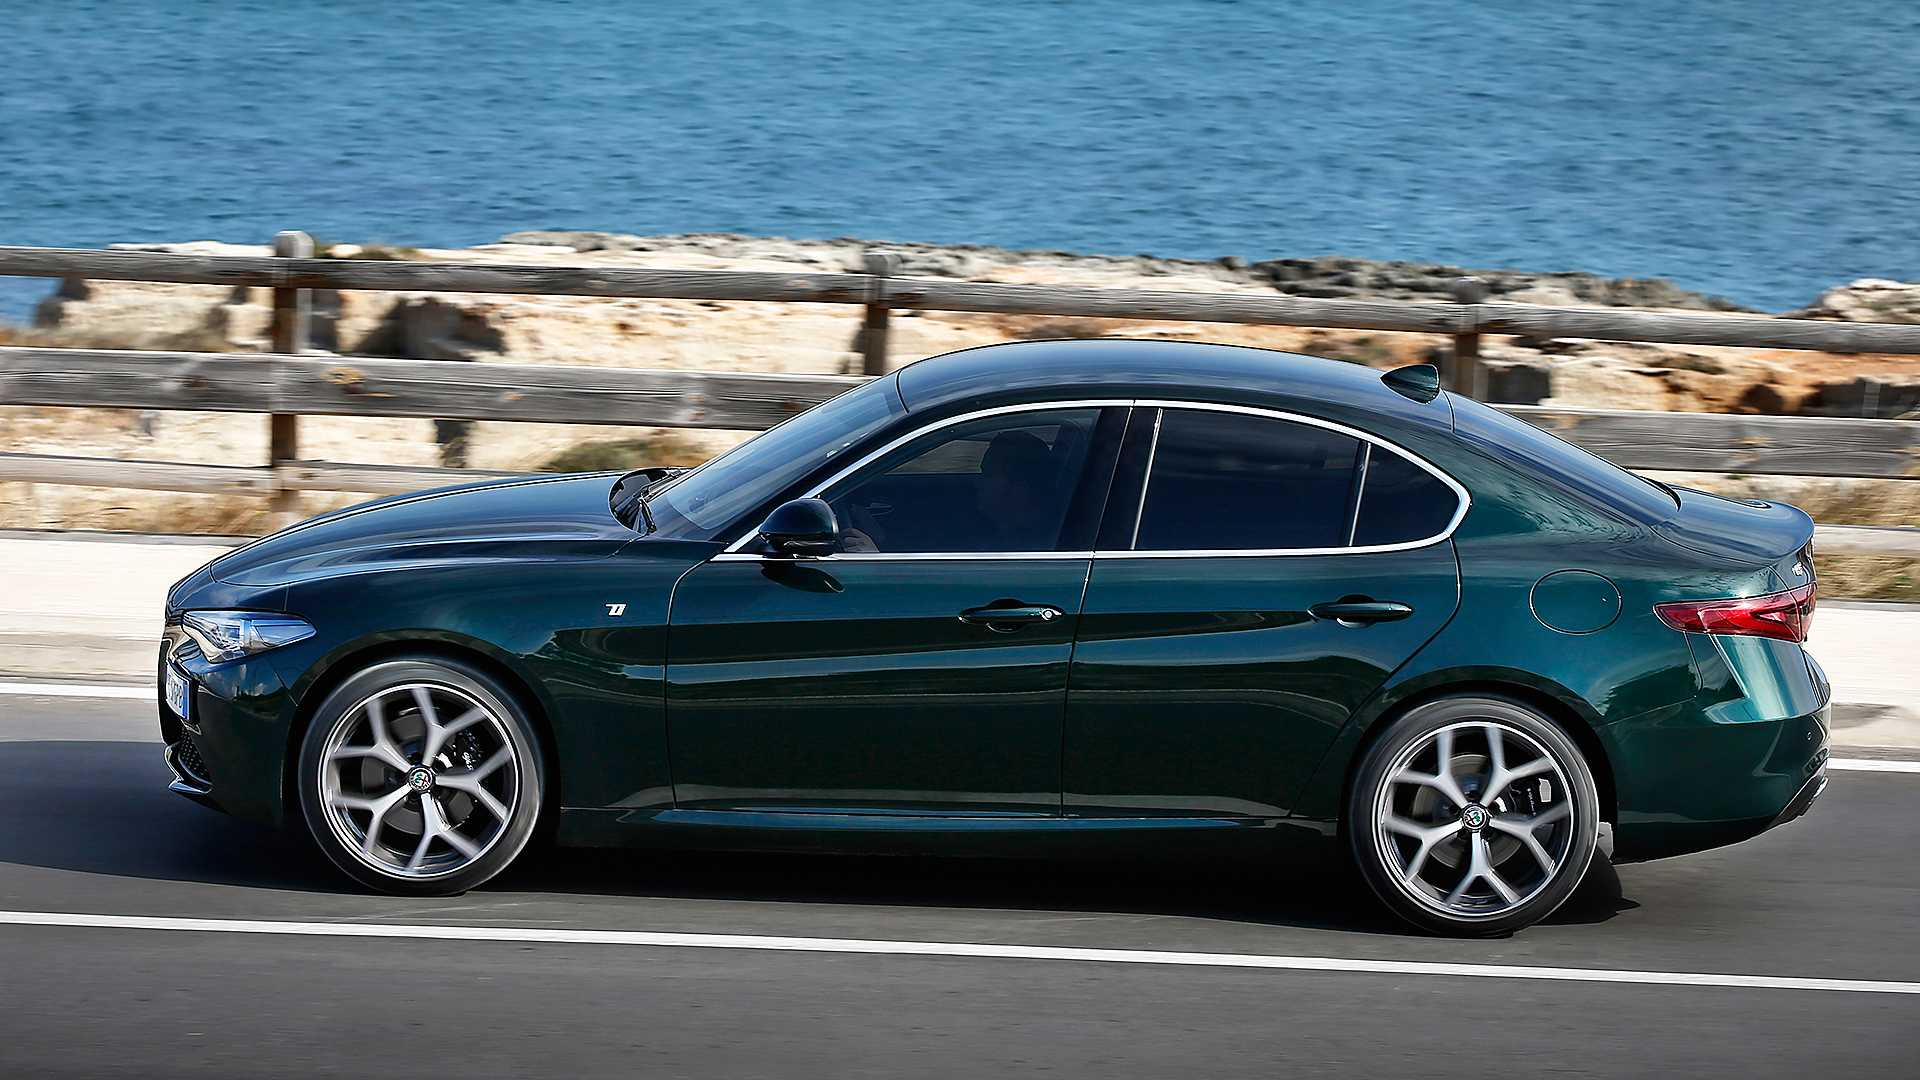 alfa-romeo-giulia-stelvio-updated-for-2020-model-year_5